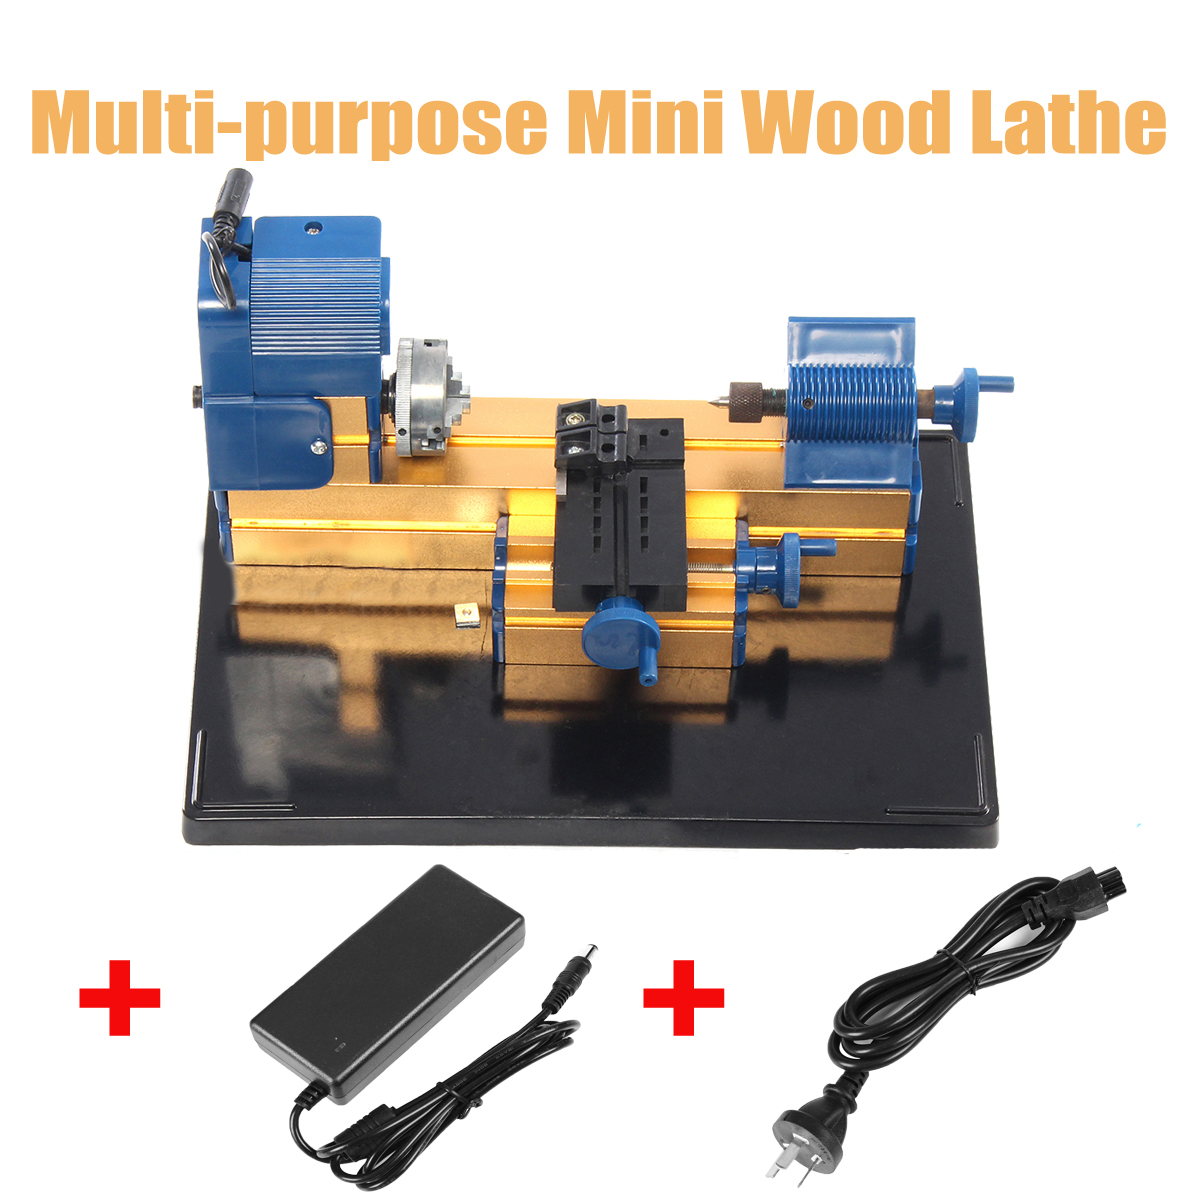 Mini Multifunction Wood Lathe Motorized Jig-saw Bead Grinder Driller 24W DC 12V 2A Woodworking Turning Cutting Bead Tool 24w all metal 24w metal wood turning lathe 20 000r min diy mini wood turning lathe